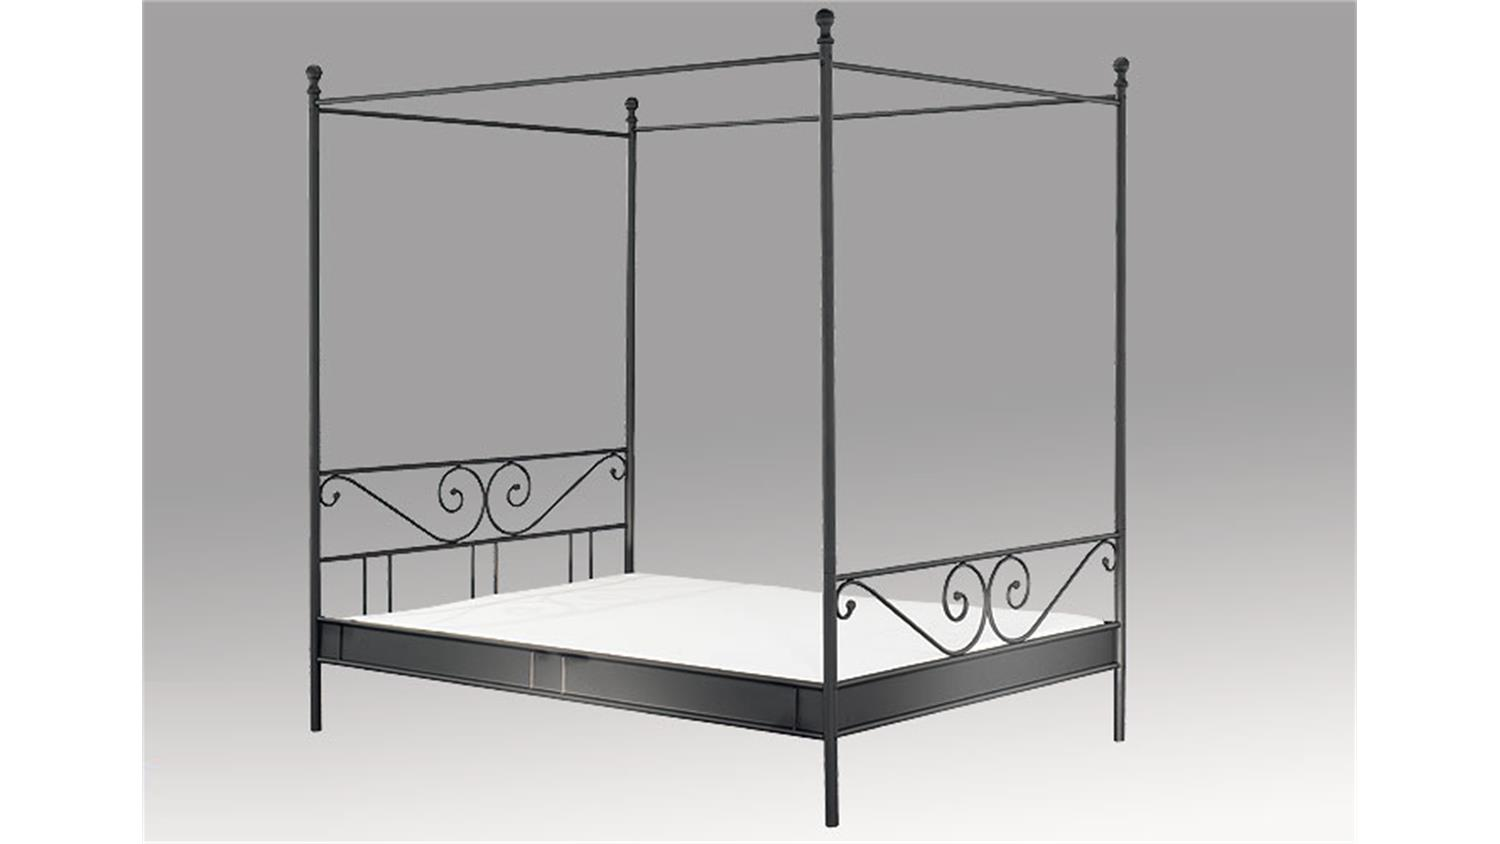 himmelbett cardo bett in wei liegefl che 140x200 cm. Black Bedroom Furniture Sets. Home Design Ideas